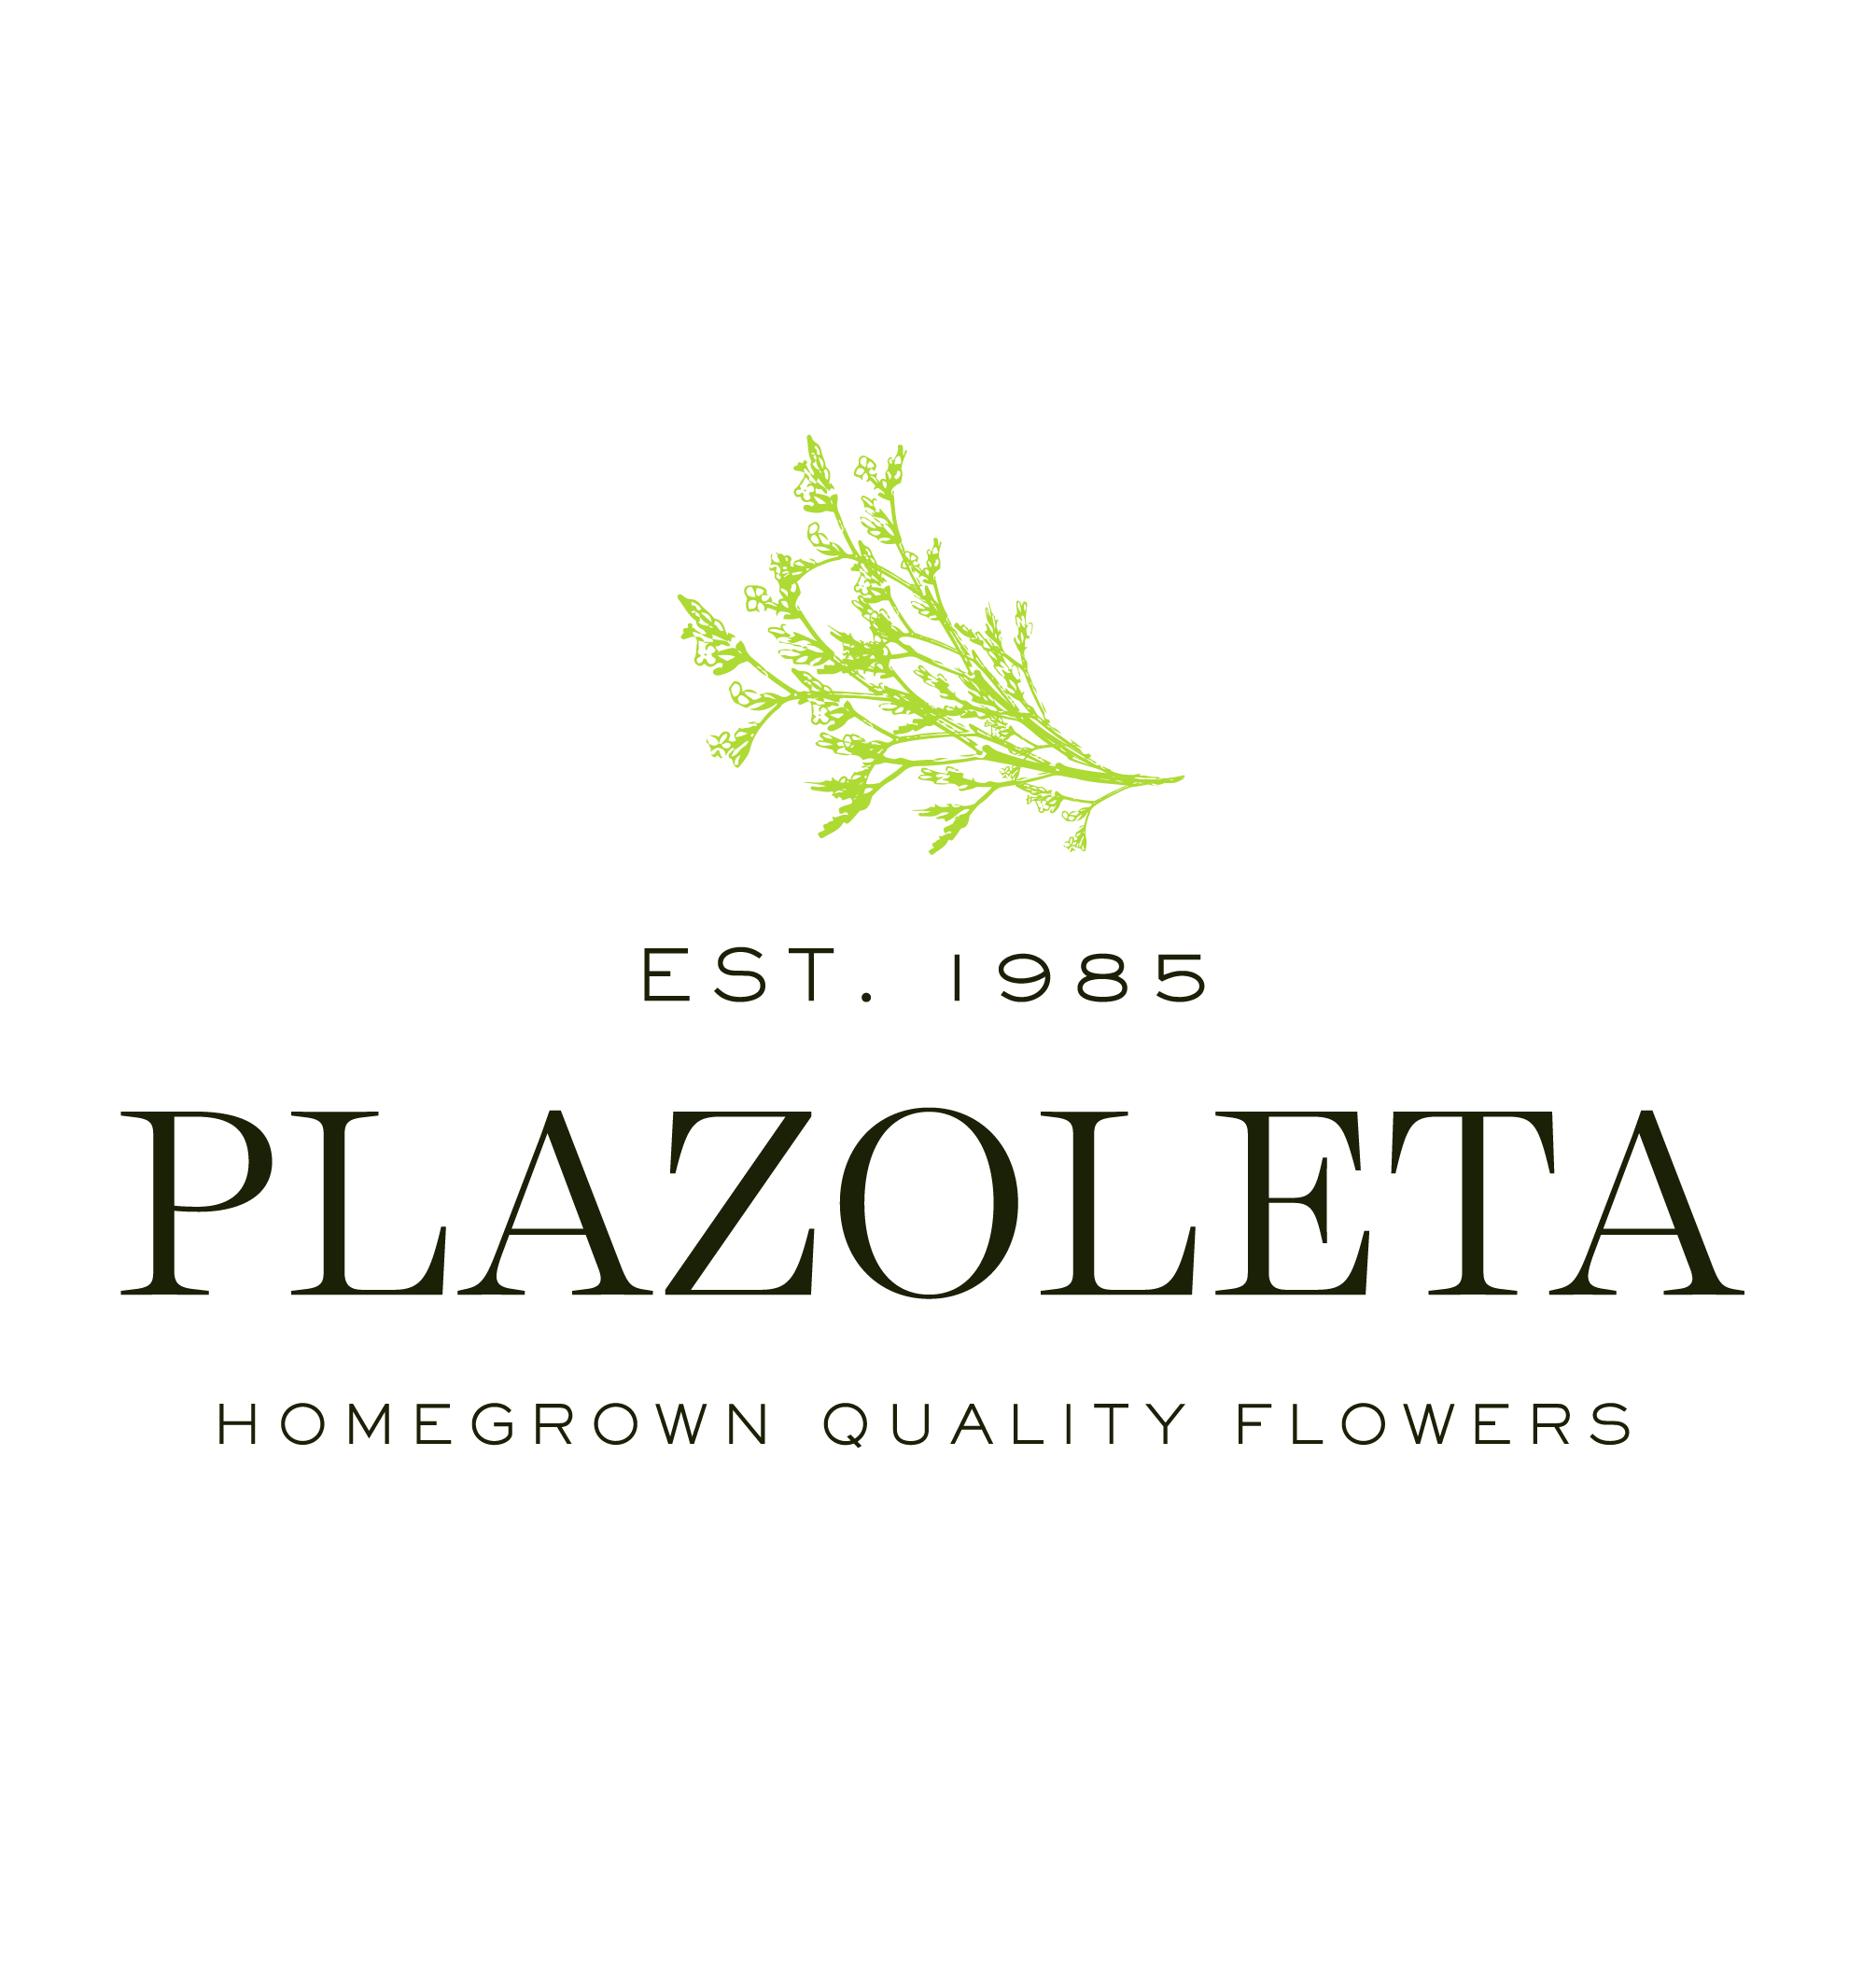 Plazoleta Flowers-01-01.png